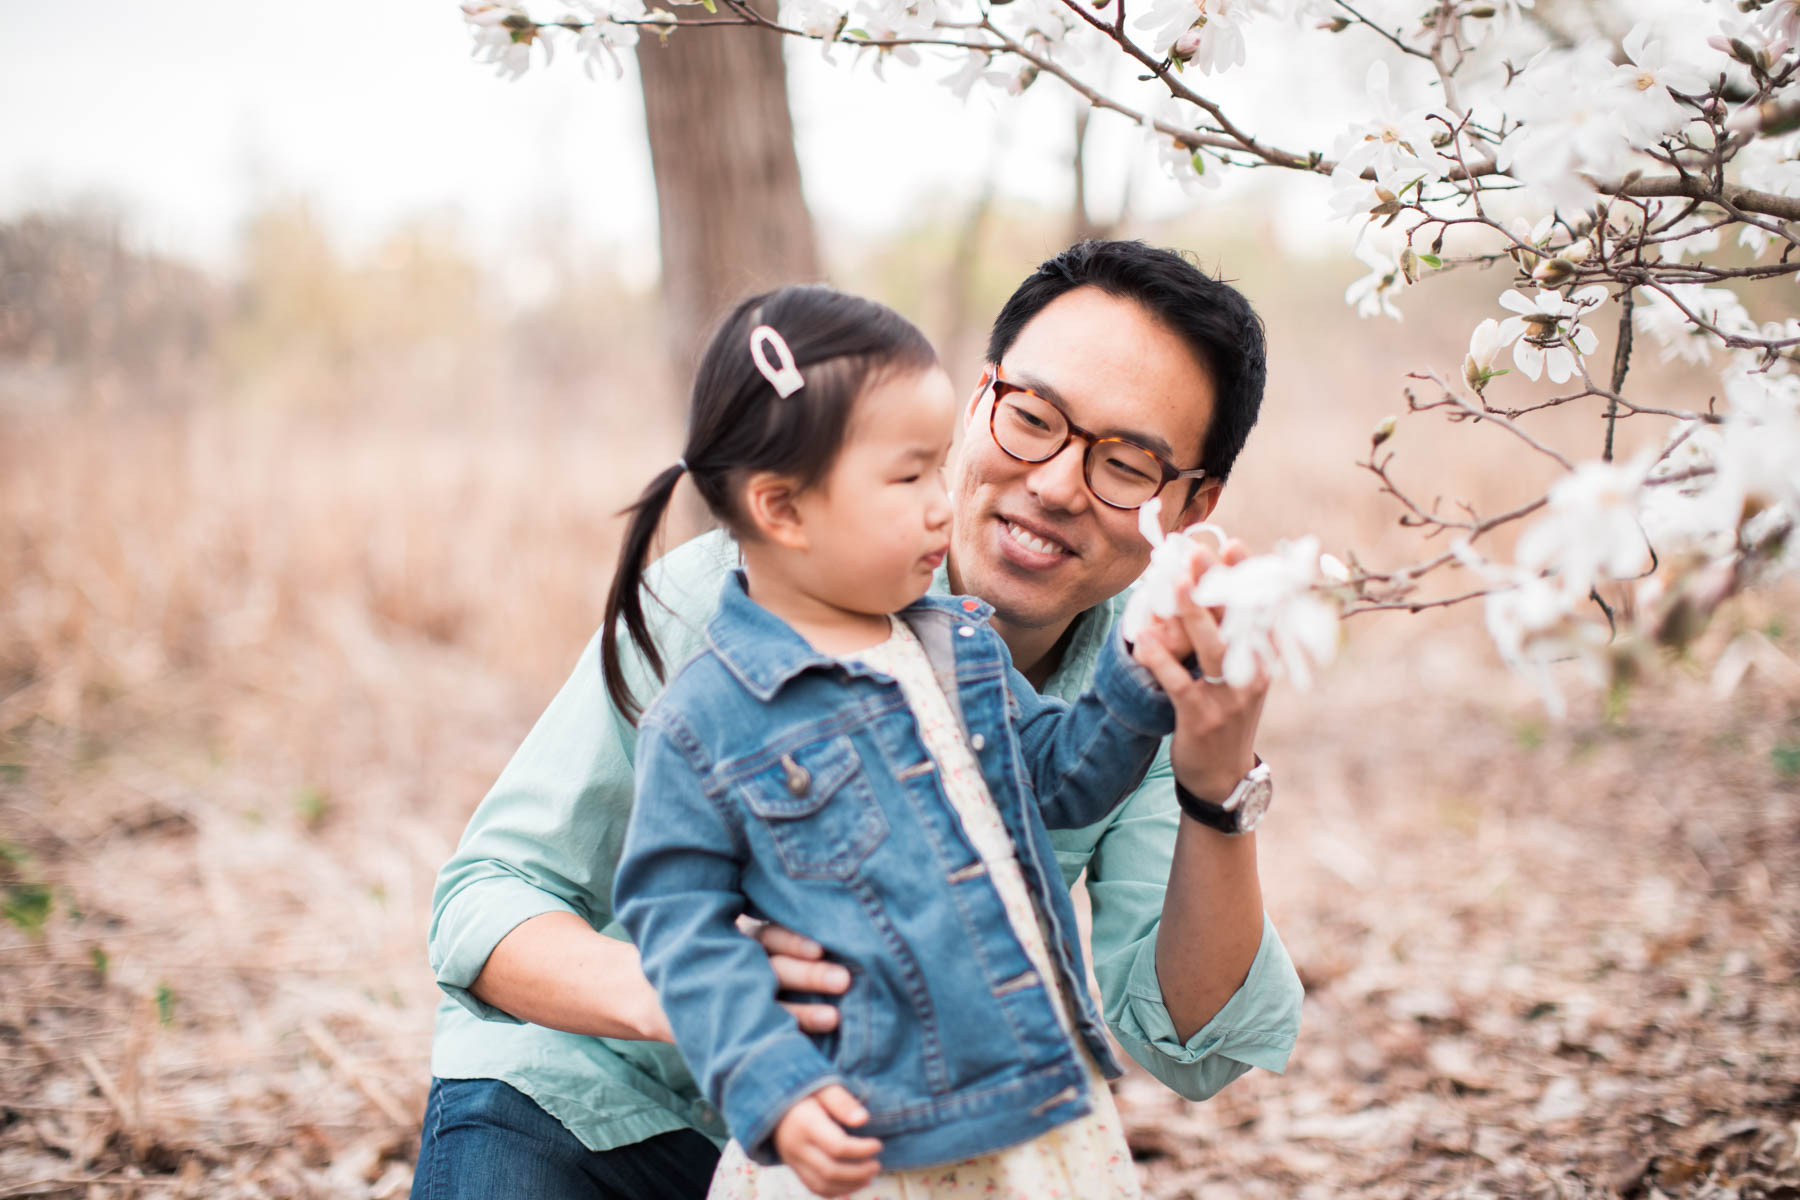 Toddler and dad in early spring at Arnold Arboretum in Boston. New England family portraits. Cherry blossoms in Boston. Dogwoods in Boston. Blossoming trees in springtime.